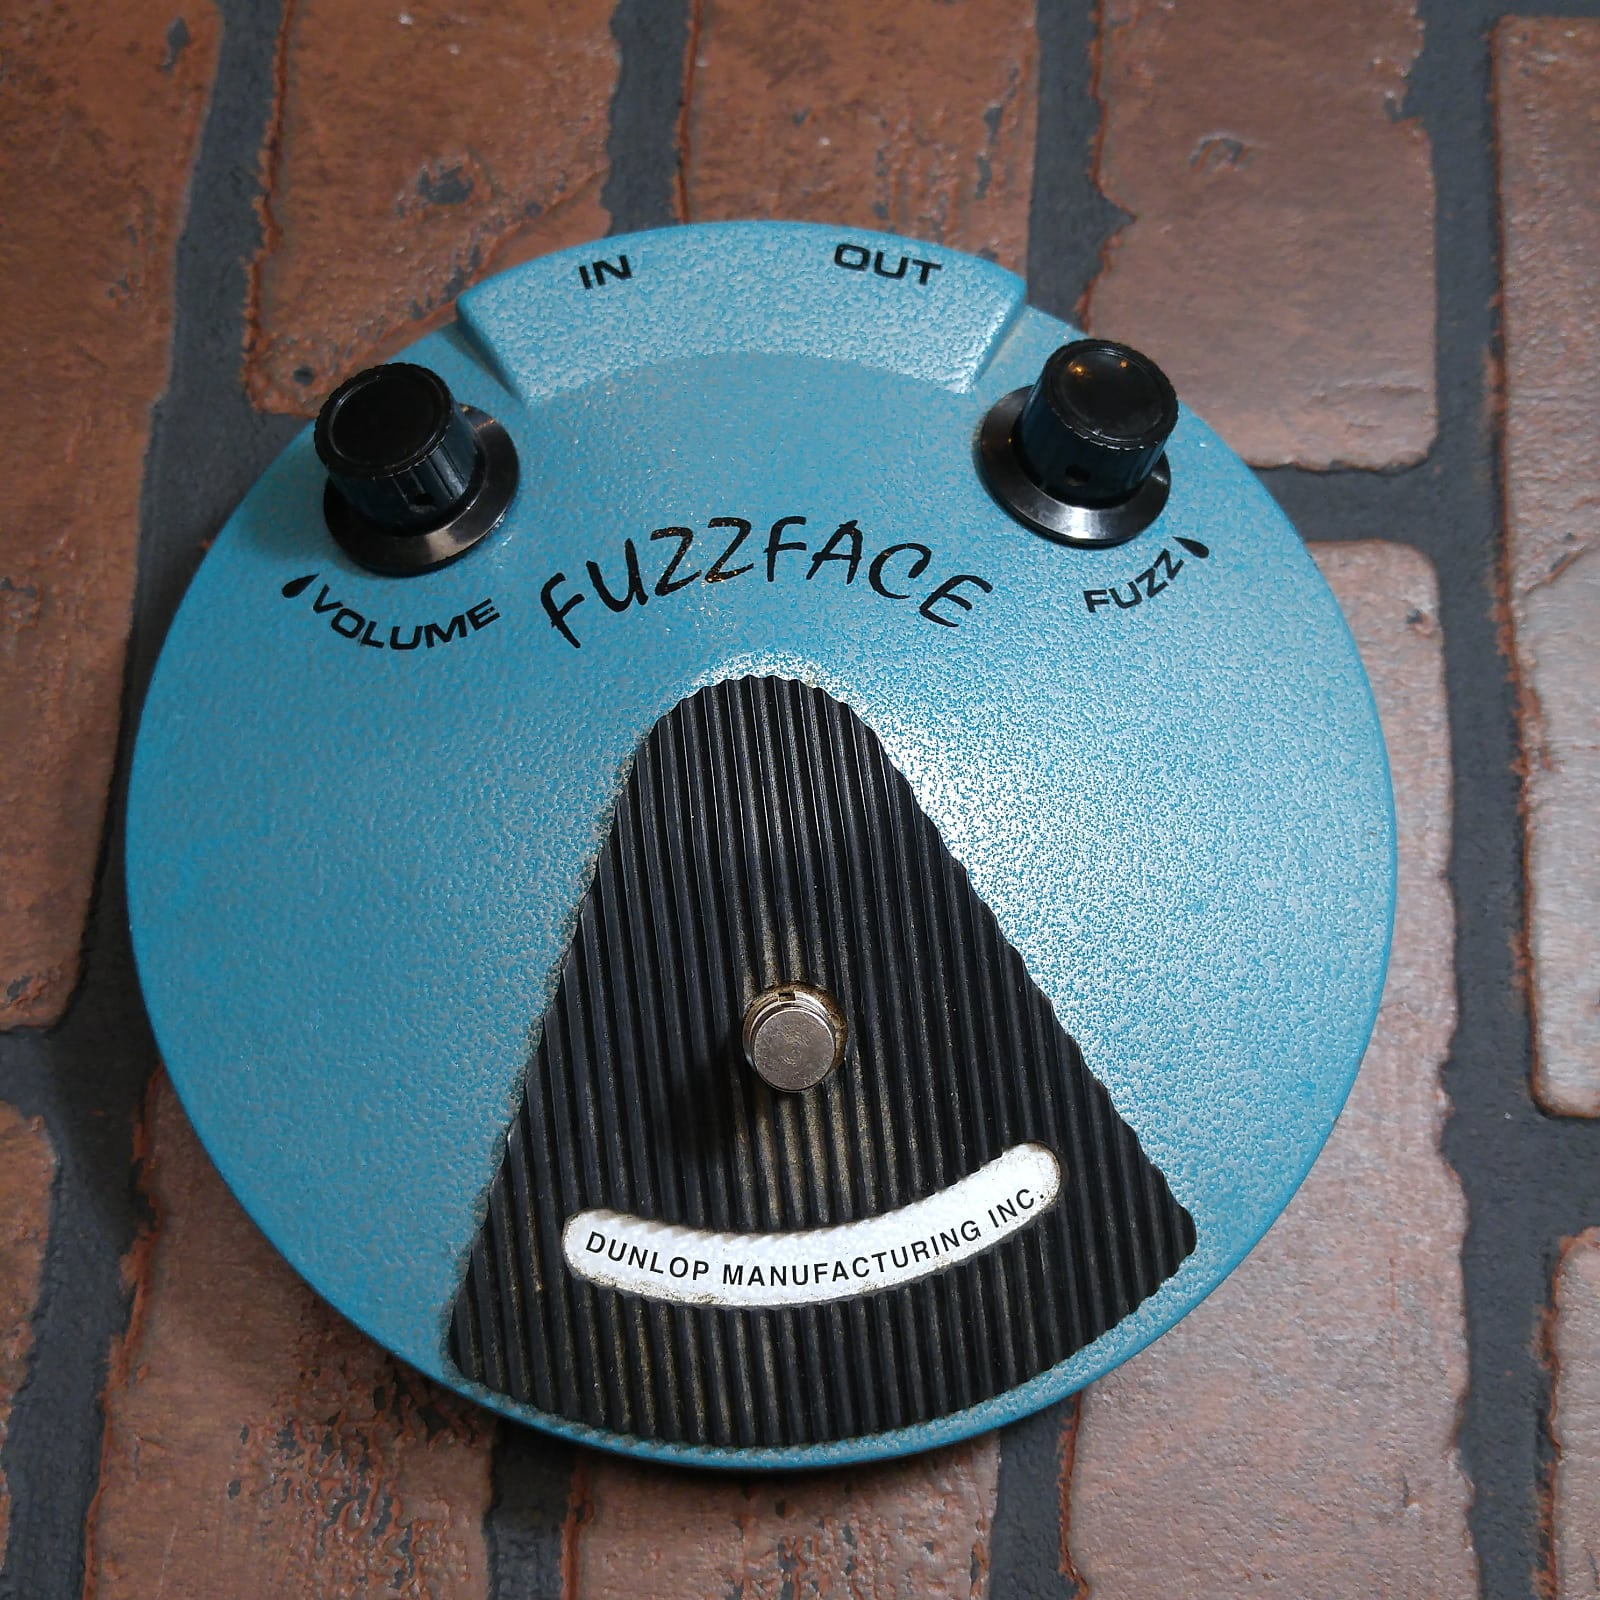 Dunlop Jh F1 Jimi Hendrix Fuzz Face Jimmy Guitar Effect Schematic Diagram